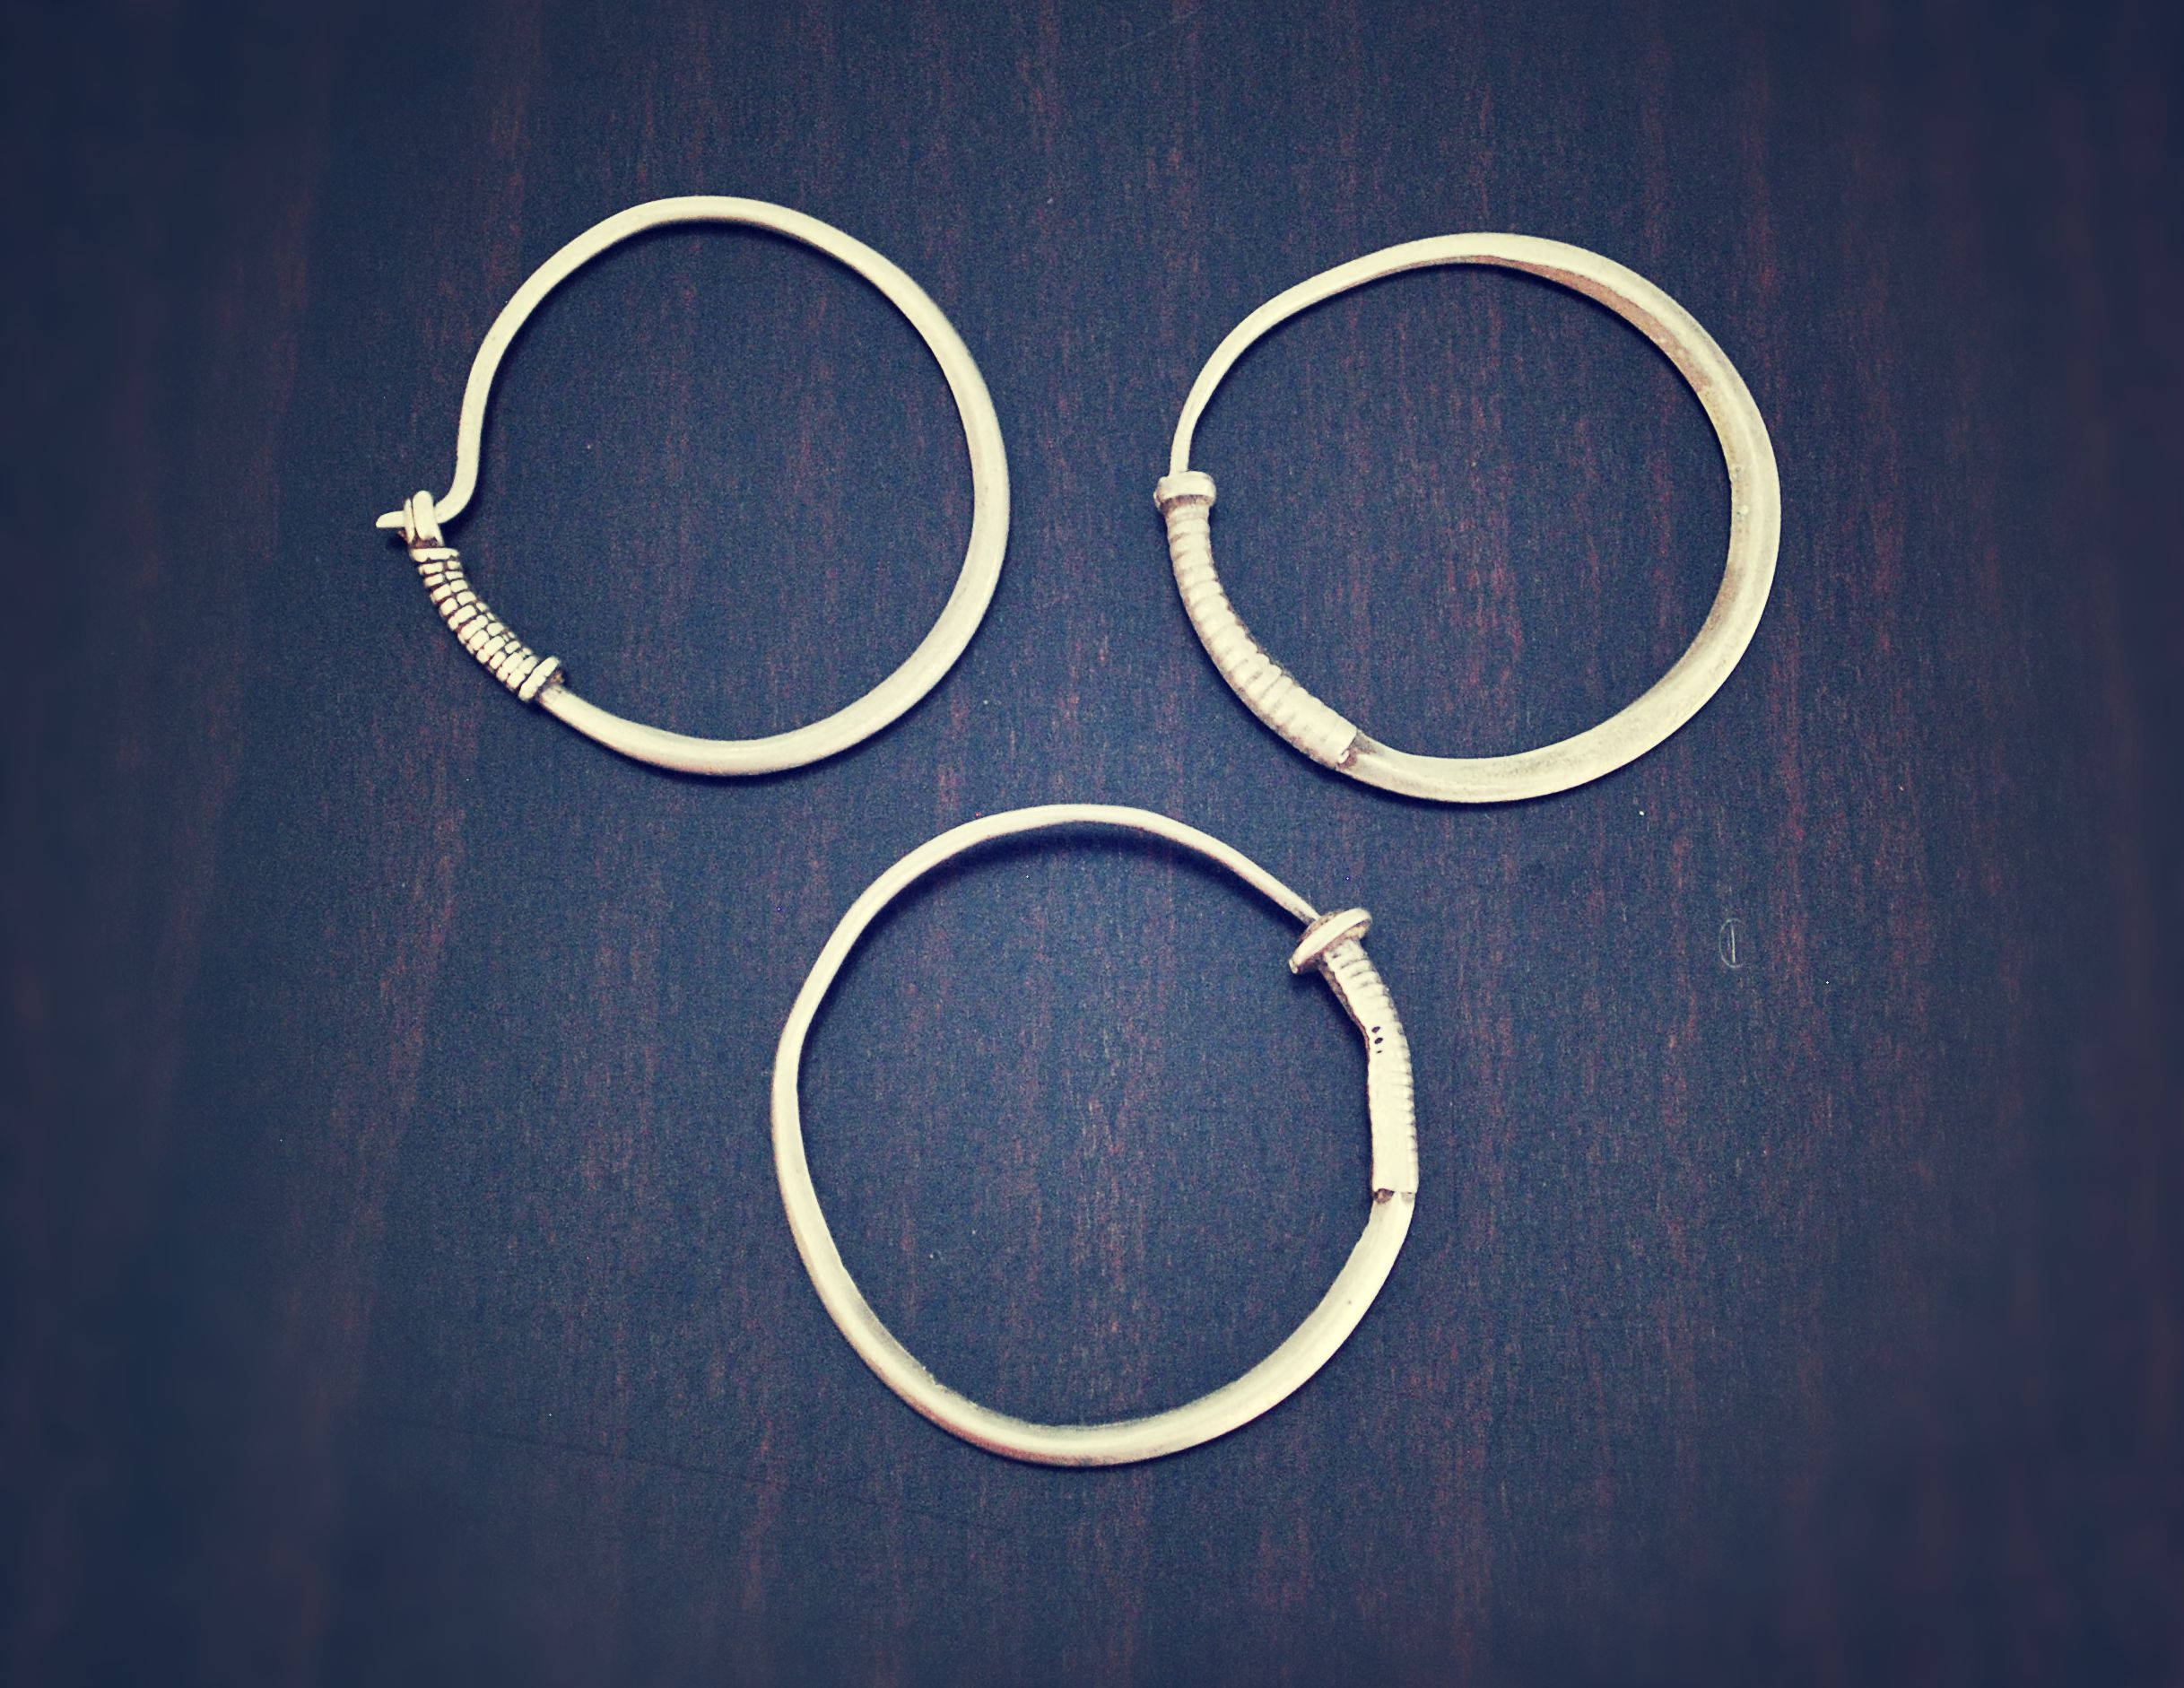 Three Antique Afghan Tribal Hoop Earrings - Kuchi Hoop Earrings - Tribal Hoop Earrings - Afghan Silver Earrings - Gypsy Hoop Earrings